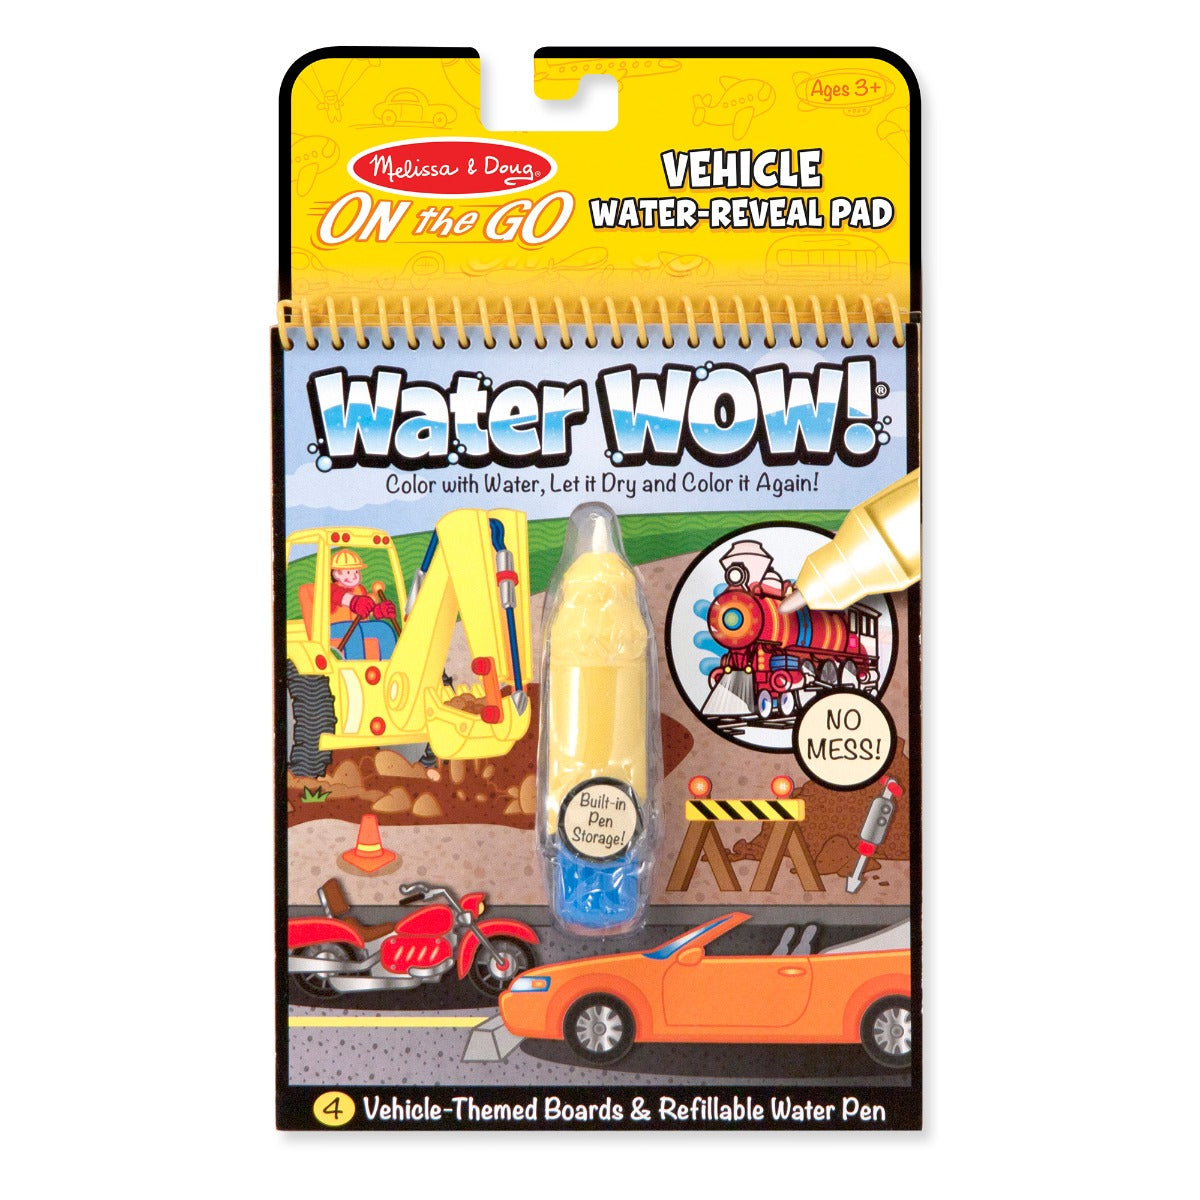 Melissa and Doug On the Go Water Wow Vehicle water-reveal pad